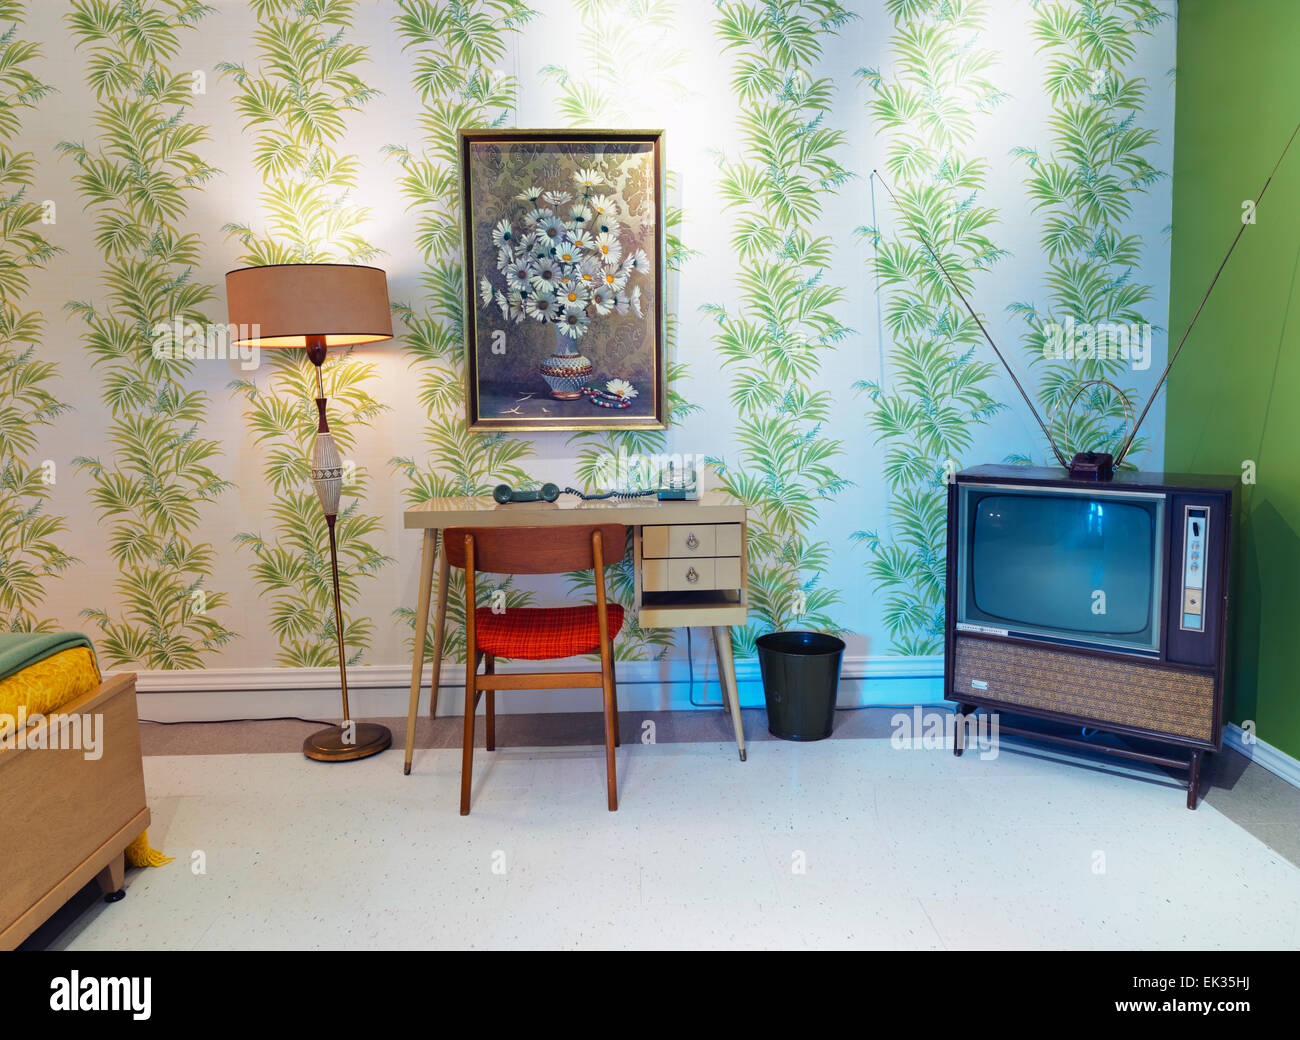 1960s Interior Design Stock Photos & 1960s Interior Design Stock ...